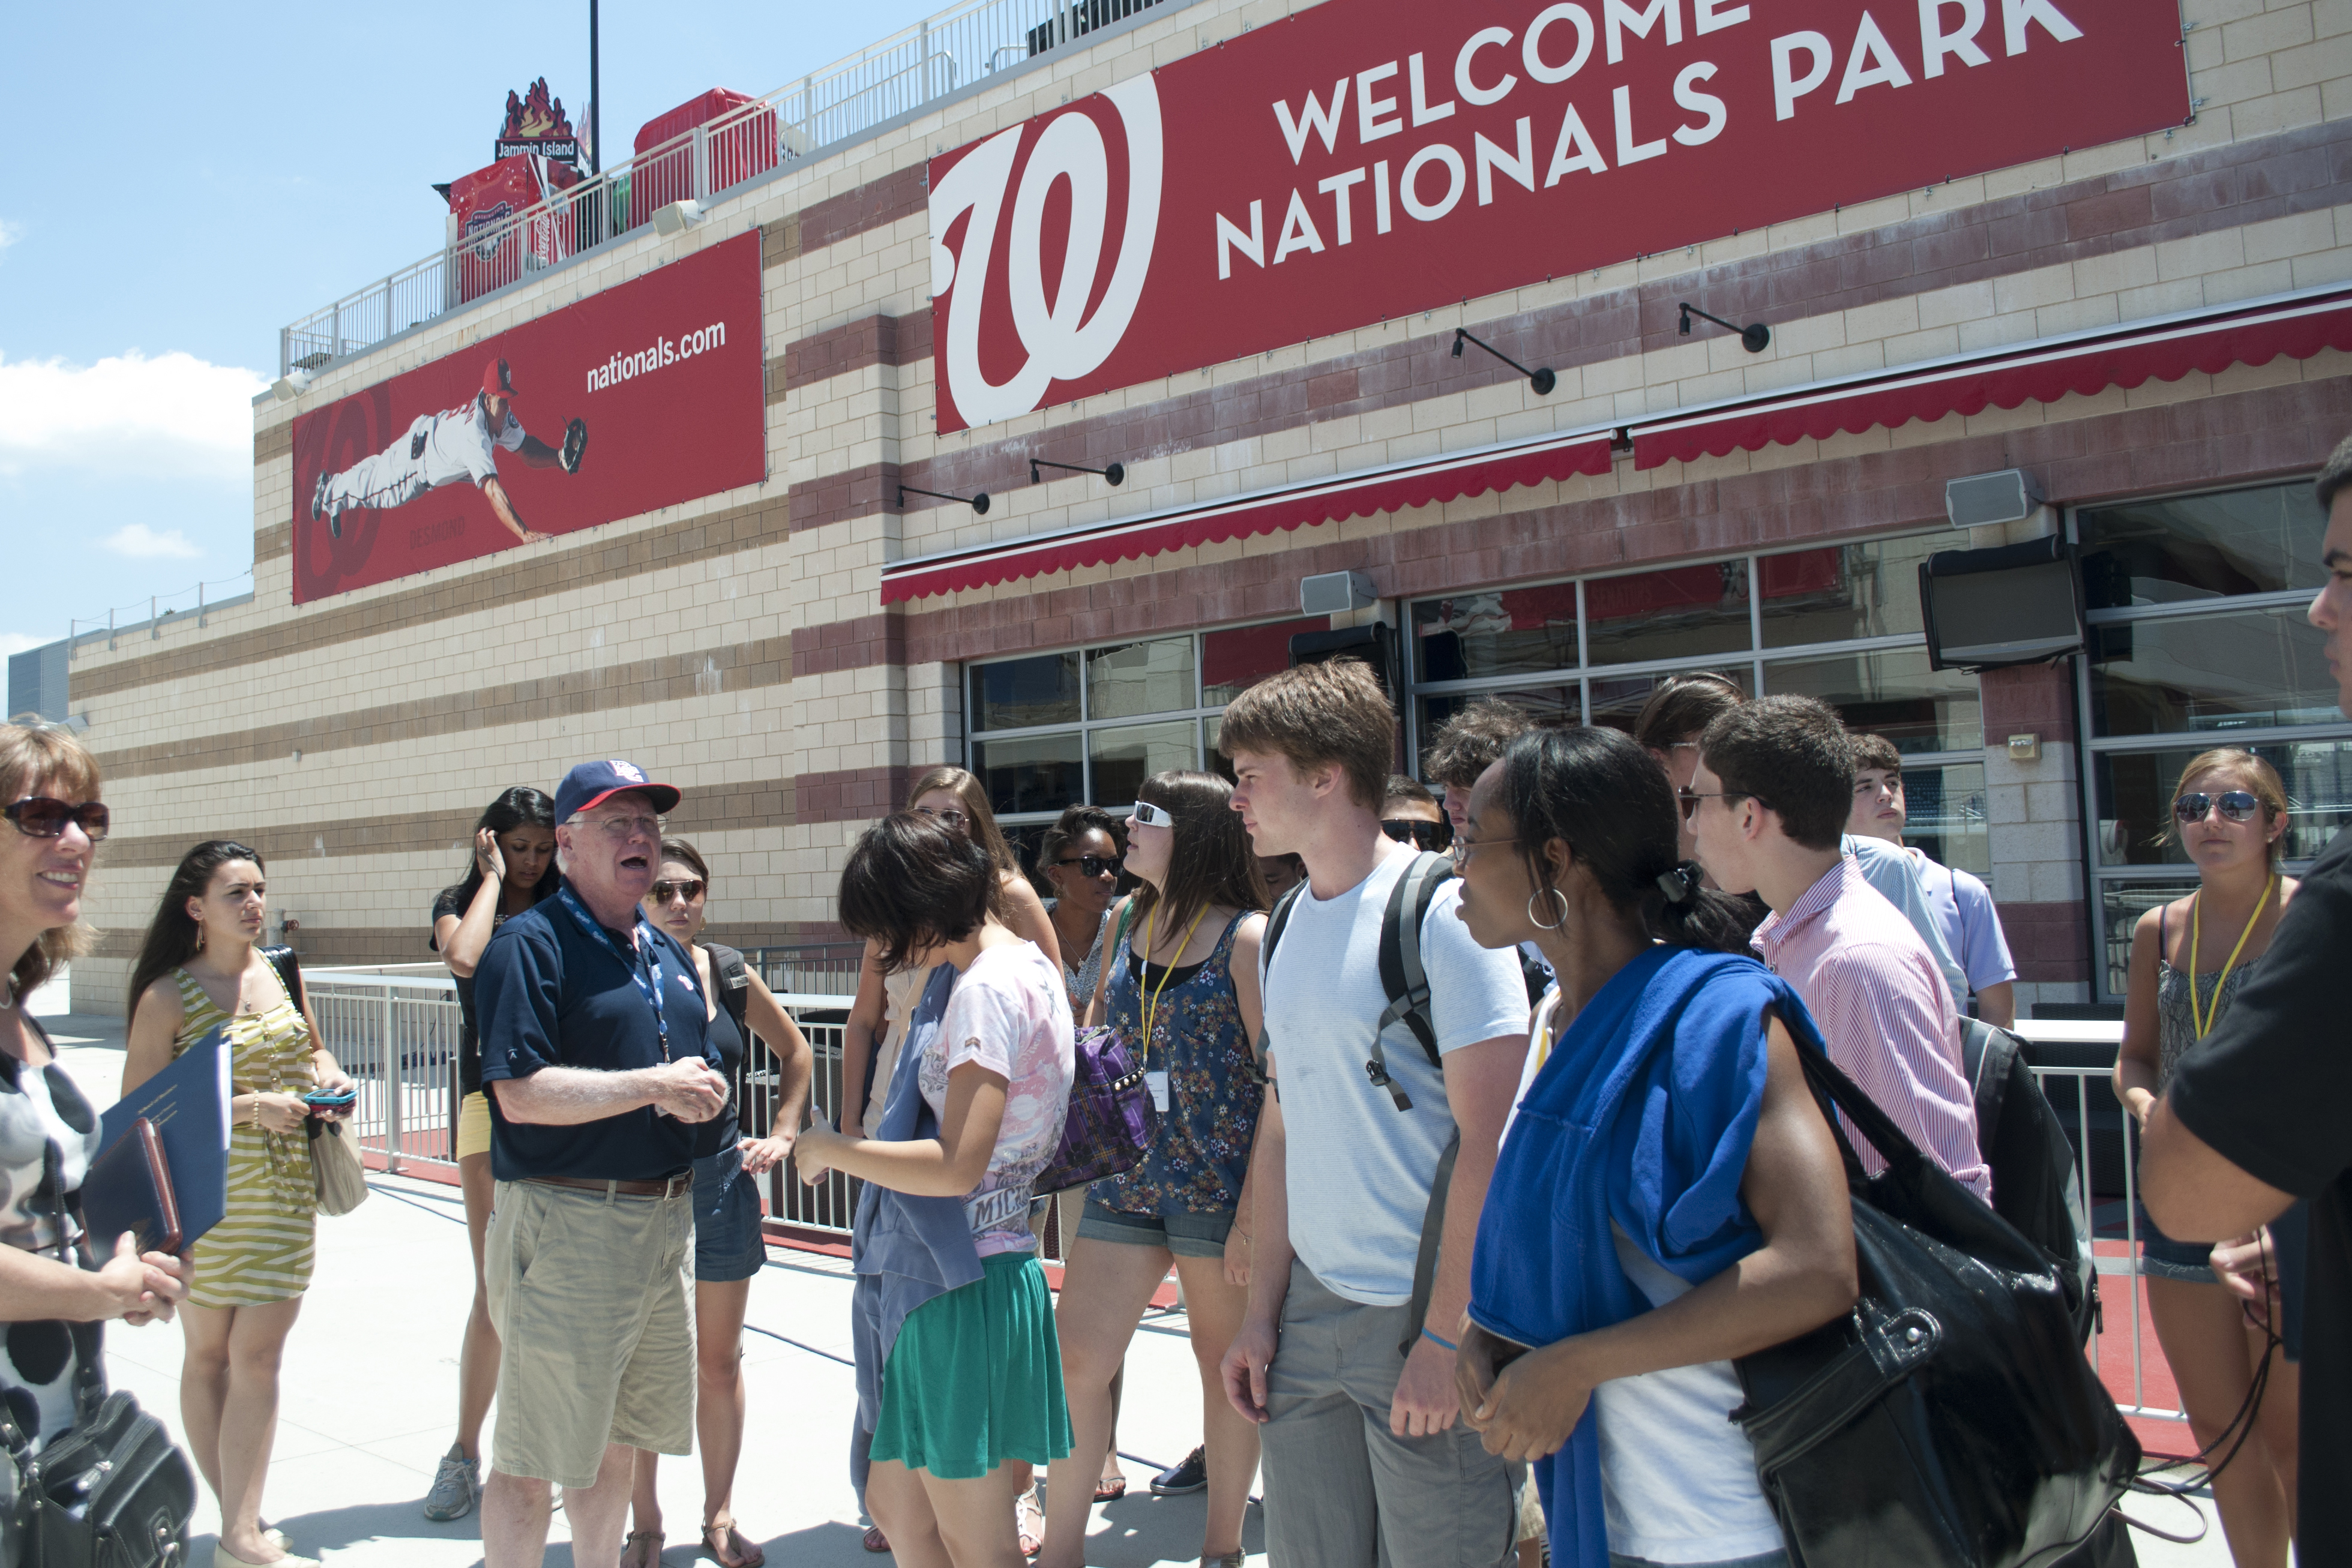 Photo of students at the Washington Nationals ball park.